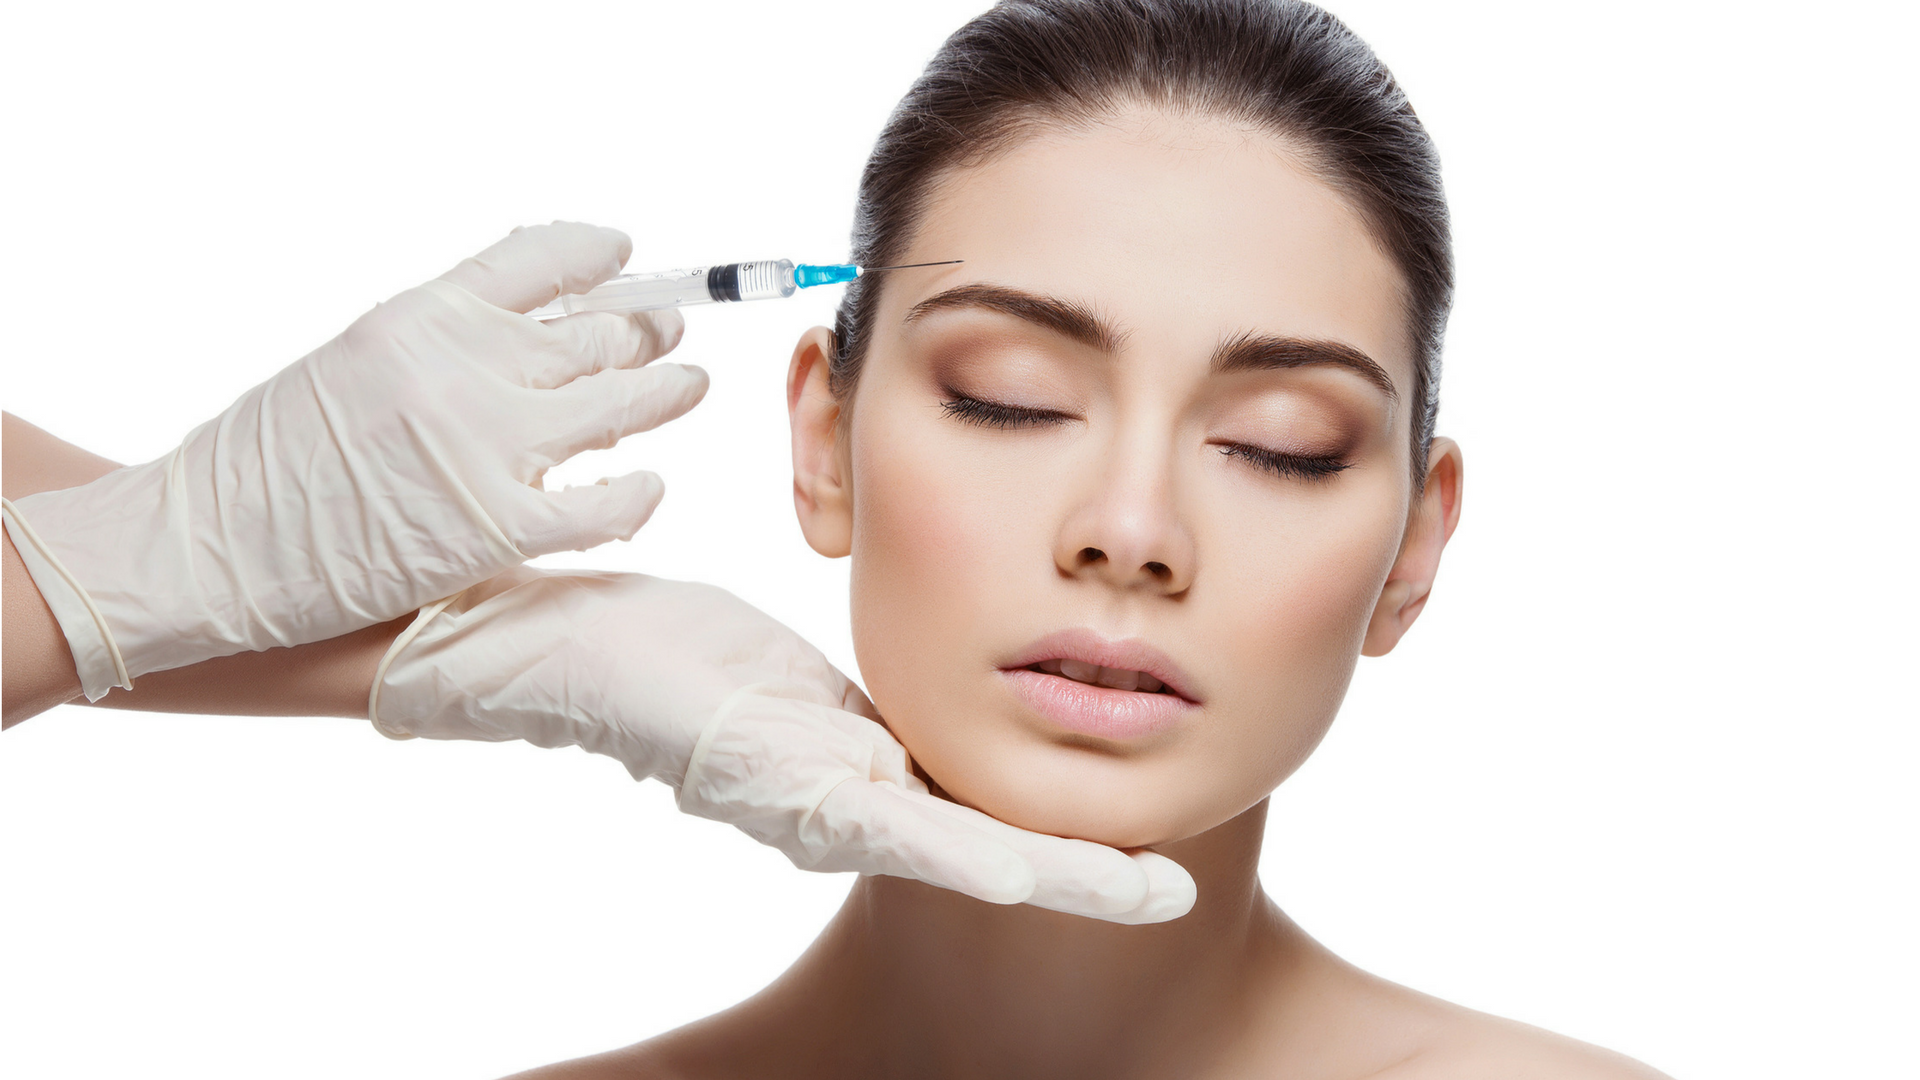 Botox At Every Age: What You Need To Know In Your 20s, 30s, And 40s Botox At Every Age: What You Need To Know In Your 20s, 30s, And 40s new pictures